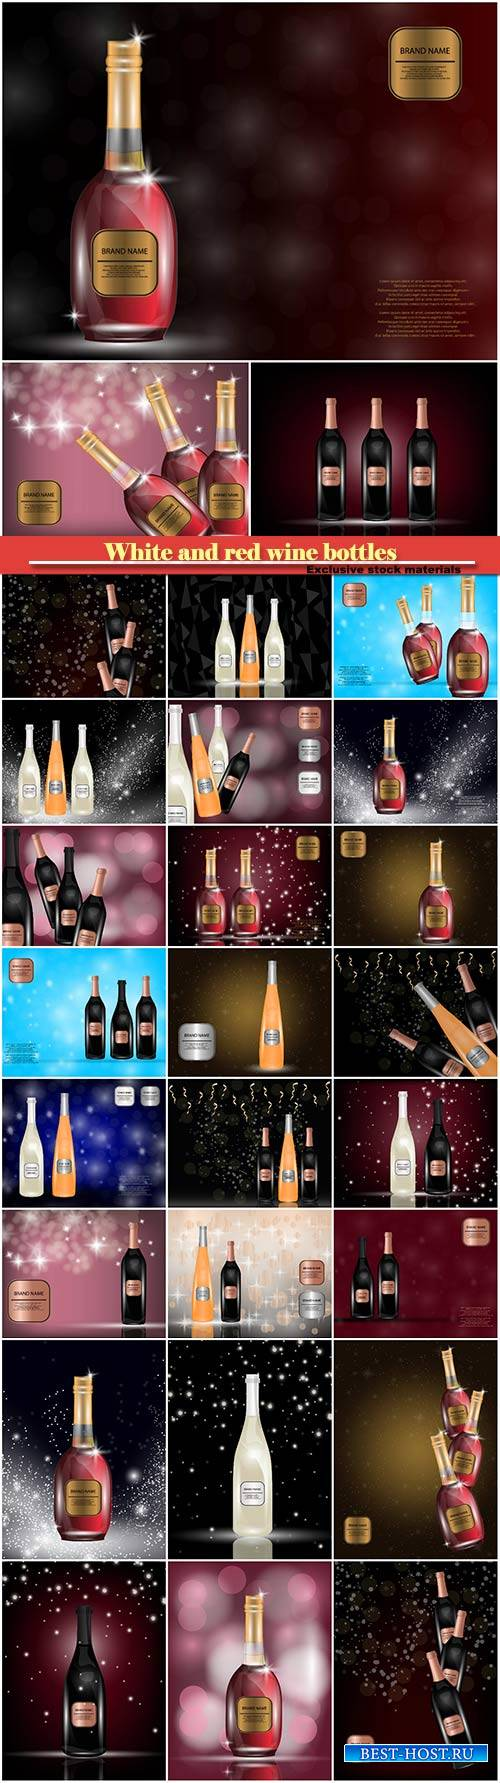 White and red wine bottles on the sparkling vector background